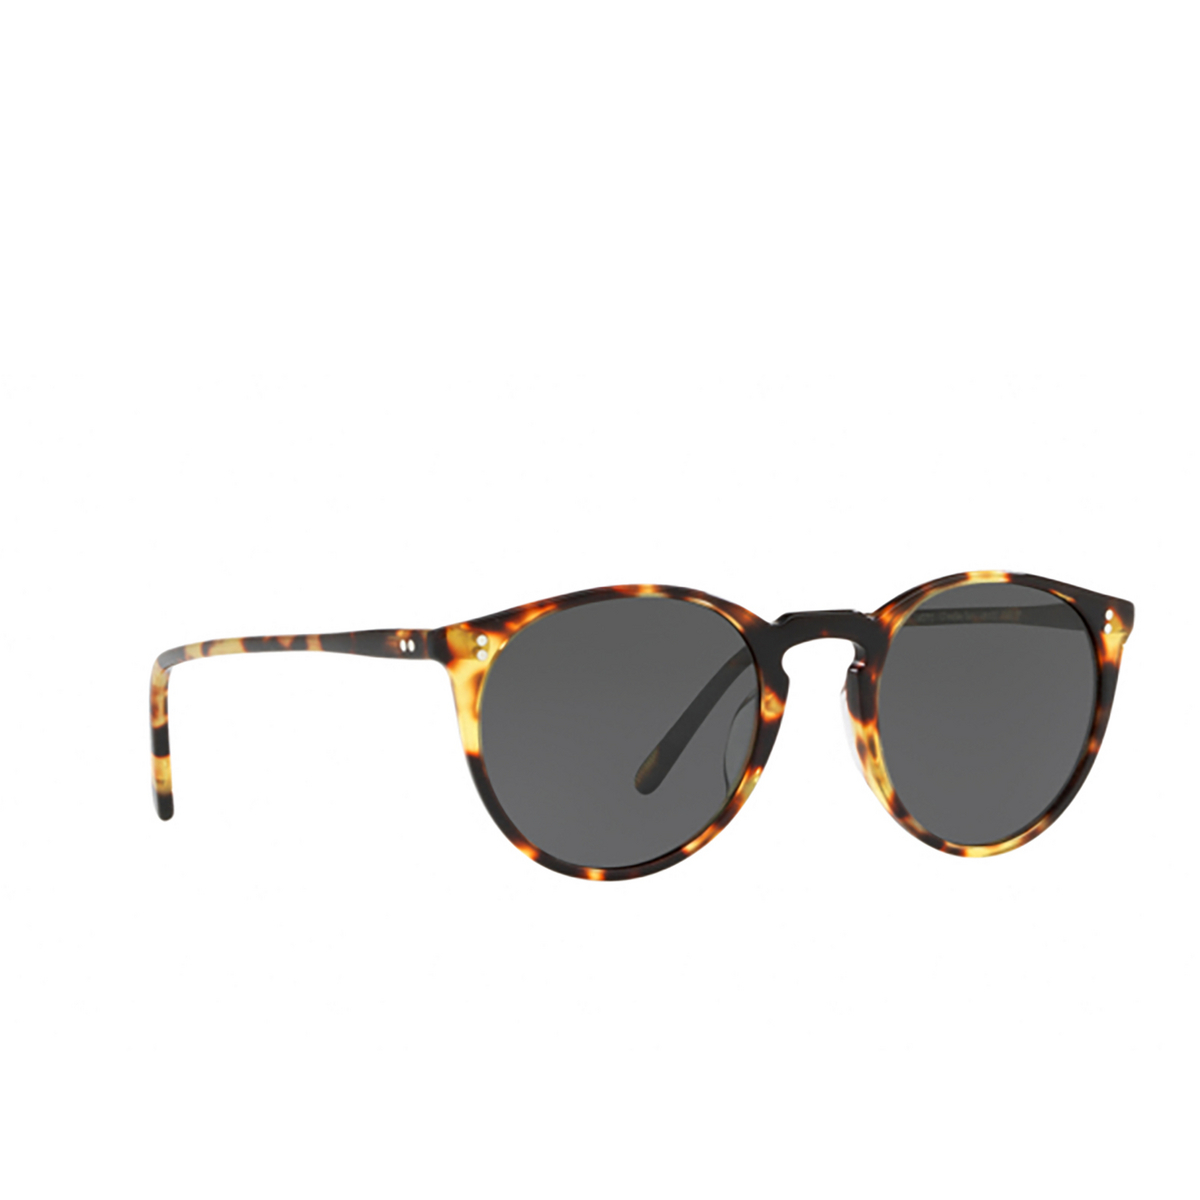 Oliver Peoples® Round Sunglasses: O'malley Sun OV5183S color Vintage Dtb 1407P2.